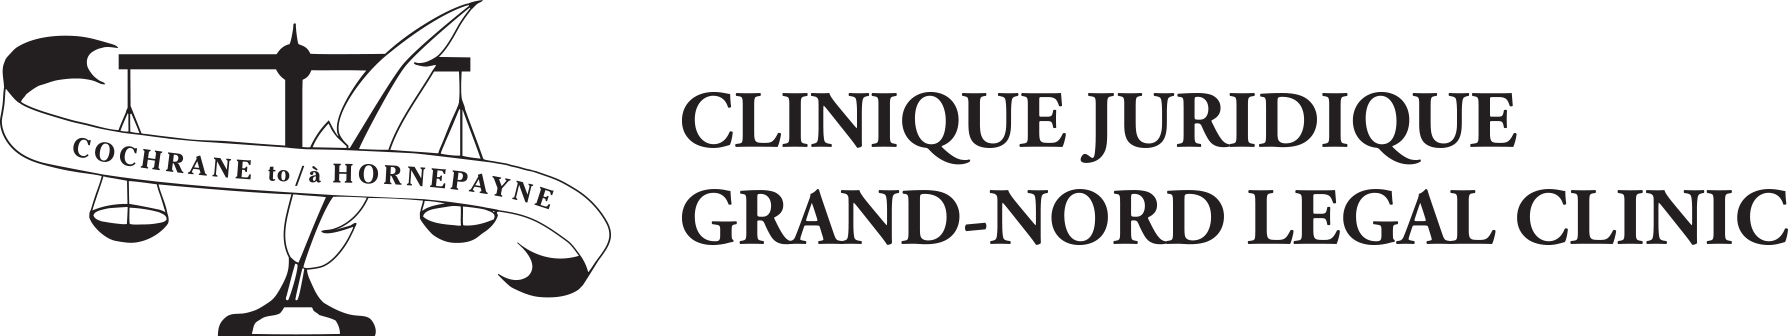 Clinique juridique Grand-Nord Legal Clinic